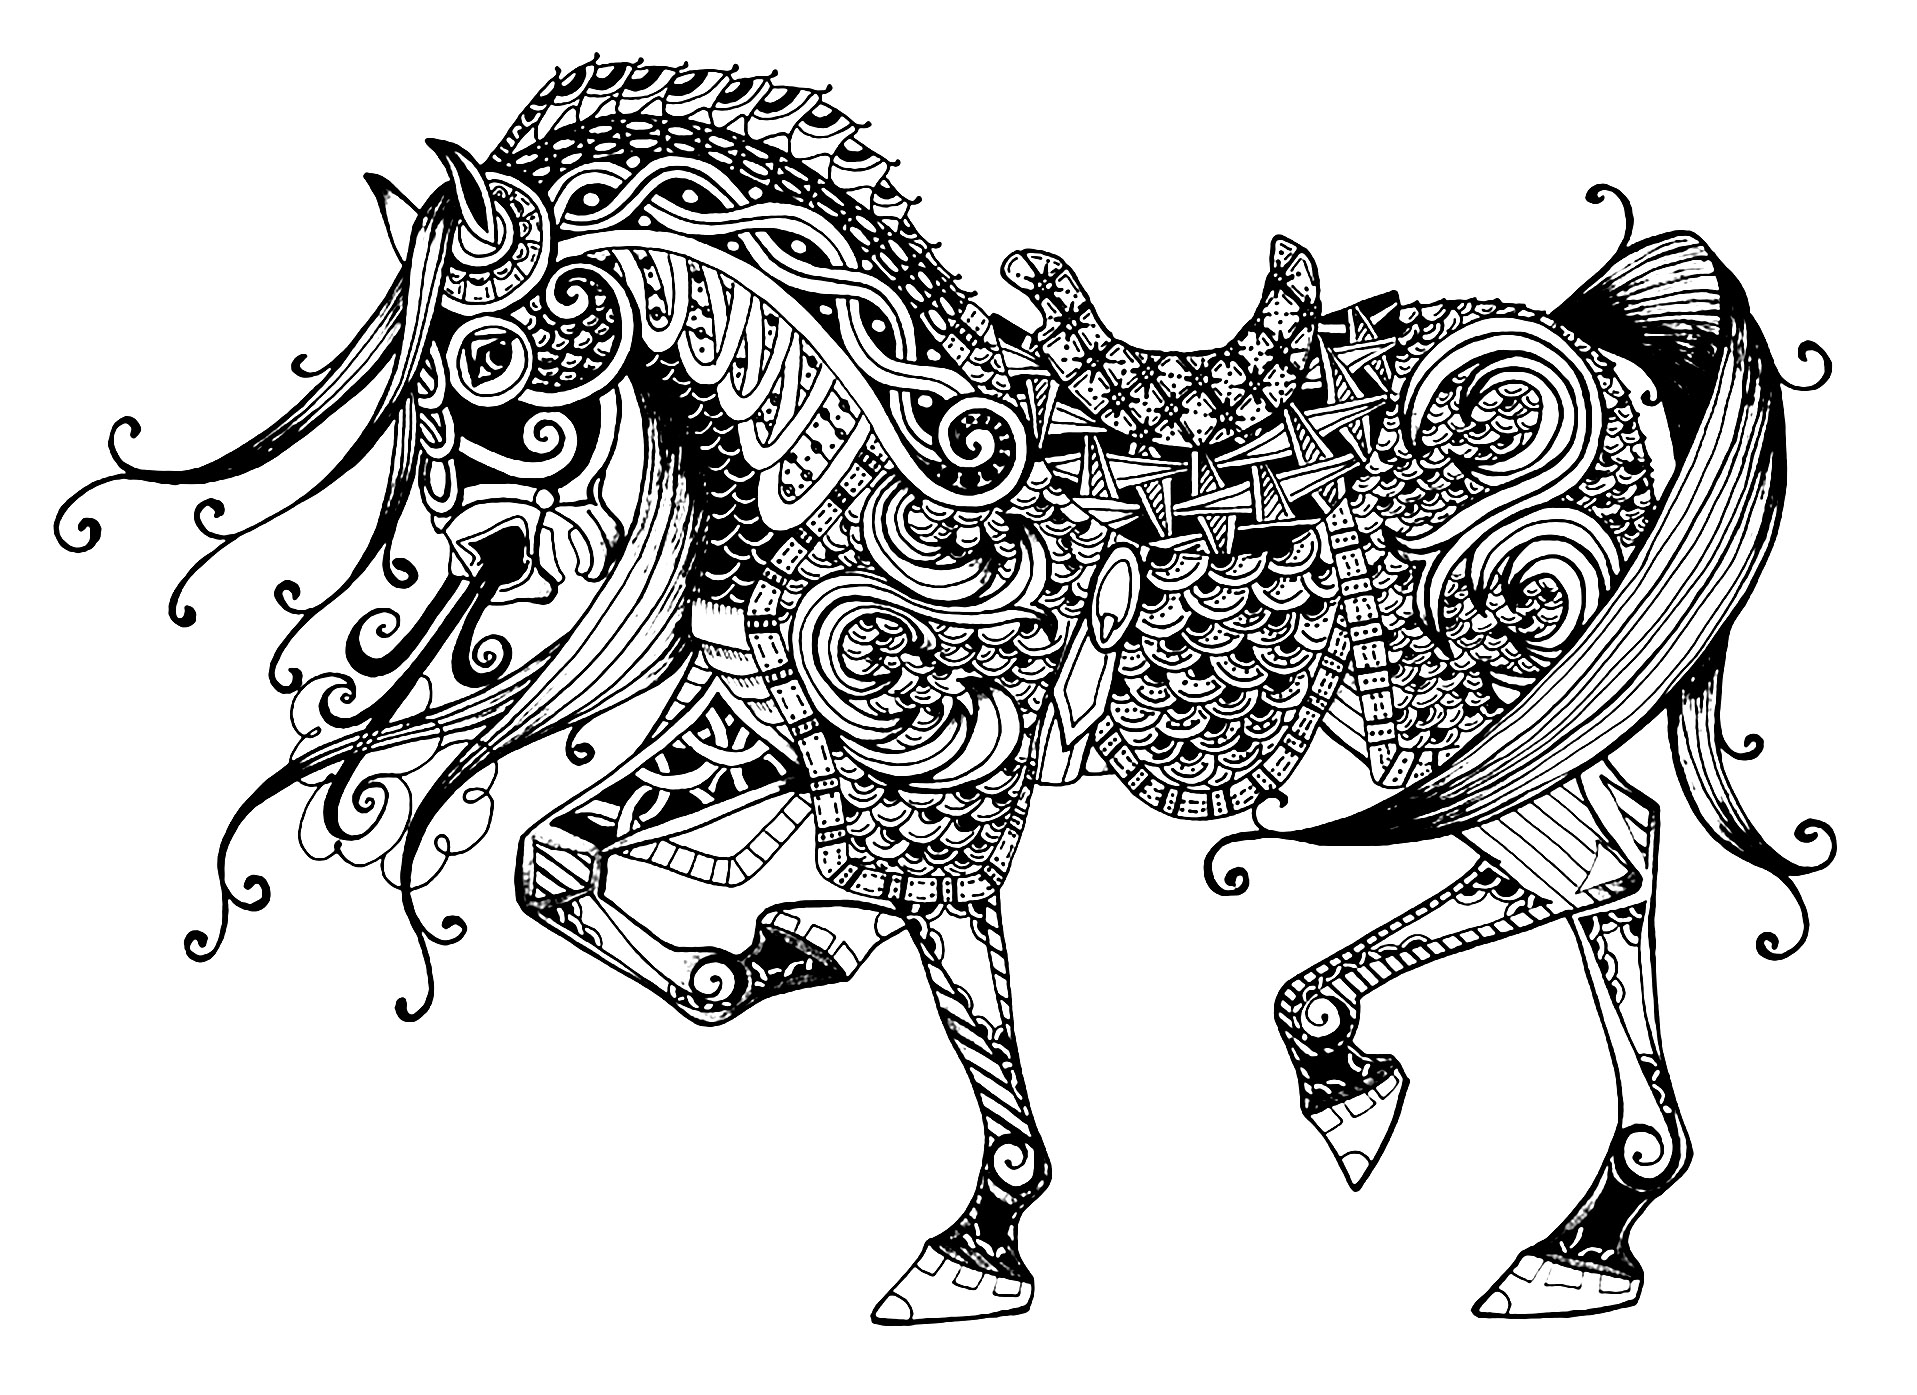 Mandala coloring pages turtles - Coloring Page Majestic Horse Free To Print